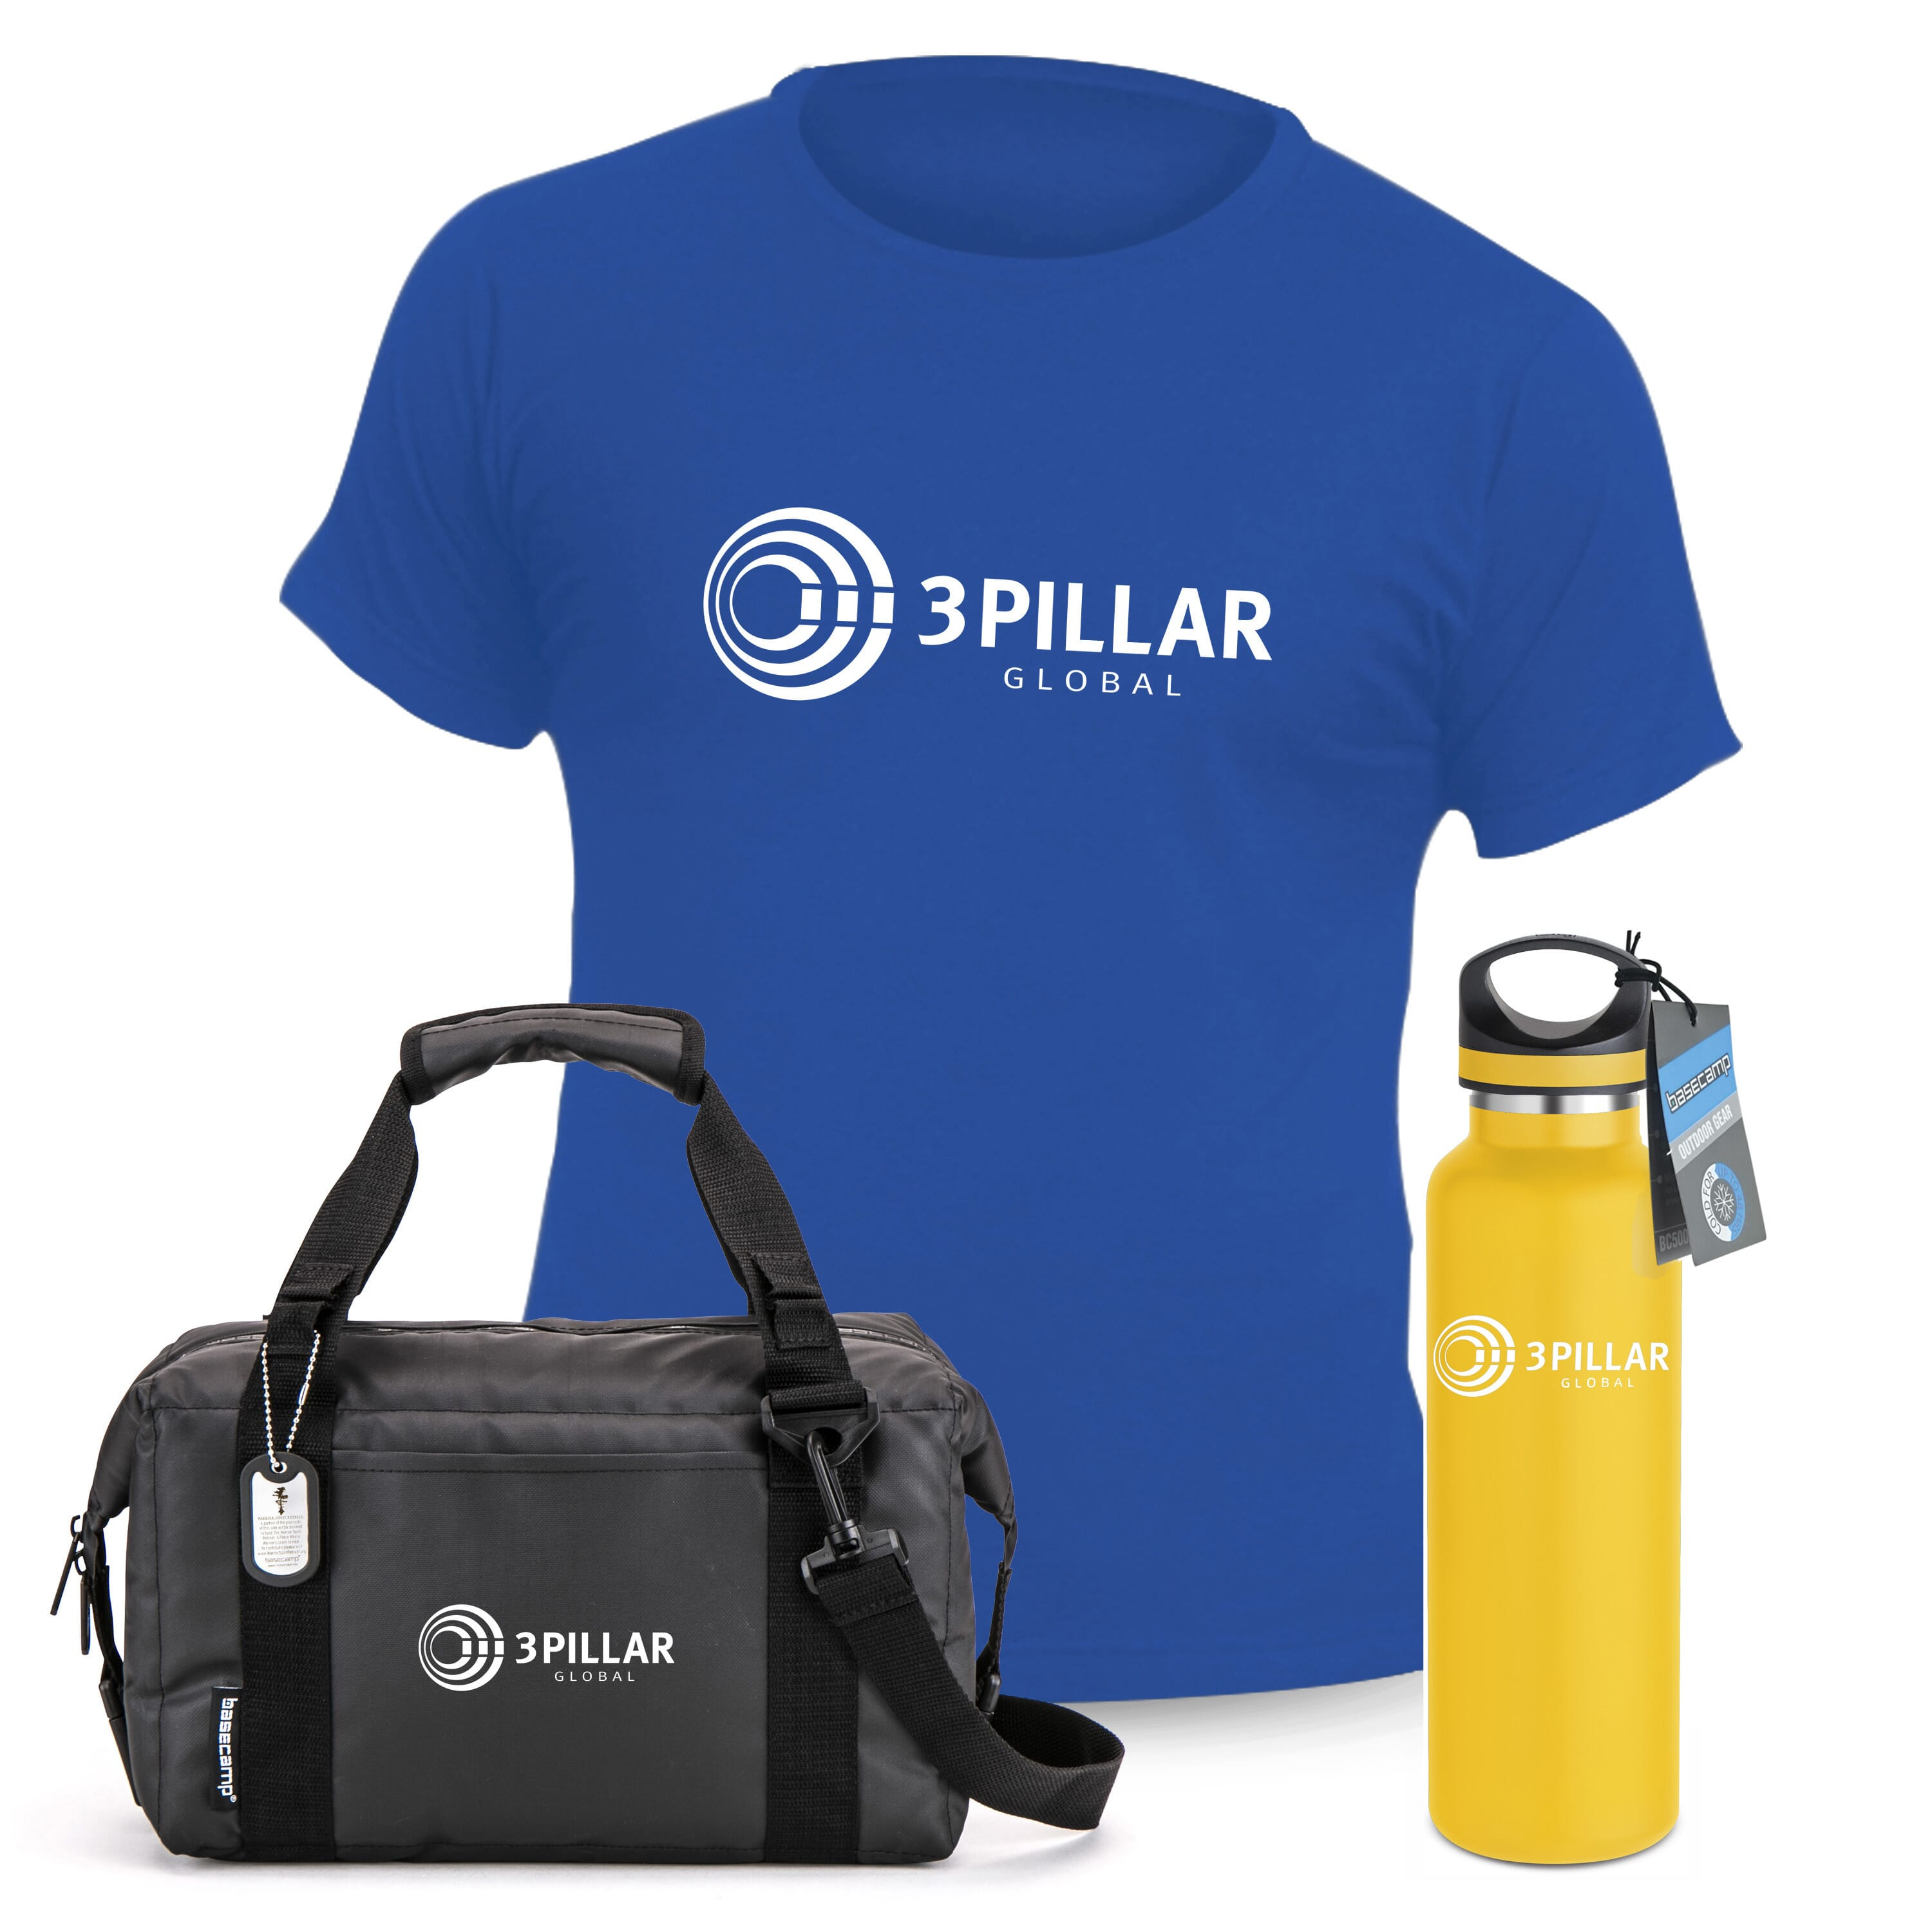 Gift set with royal blue t-shirt, yellow water bottle, and black bag